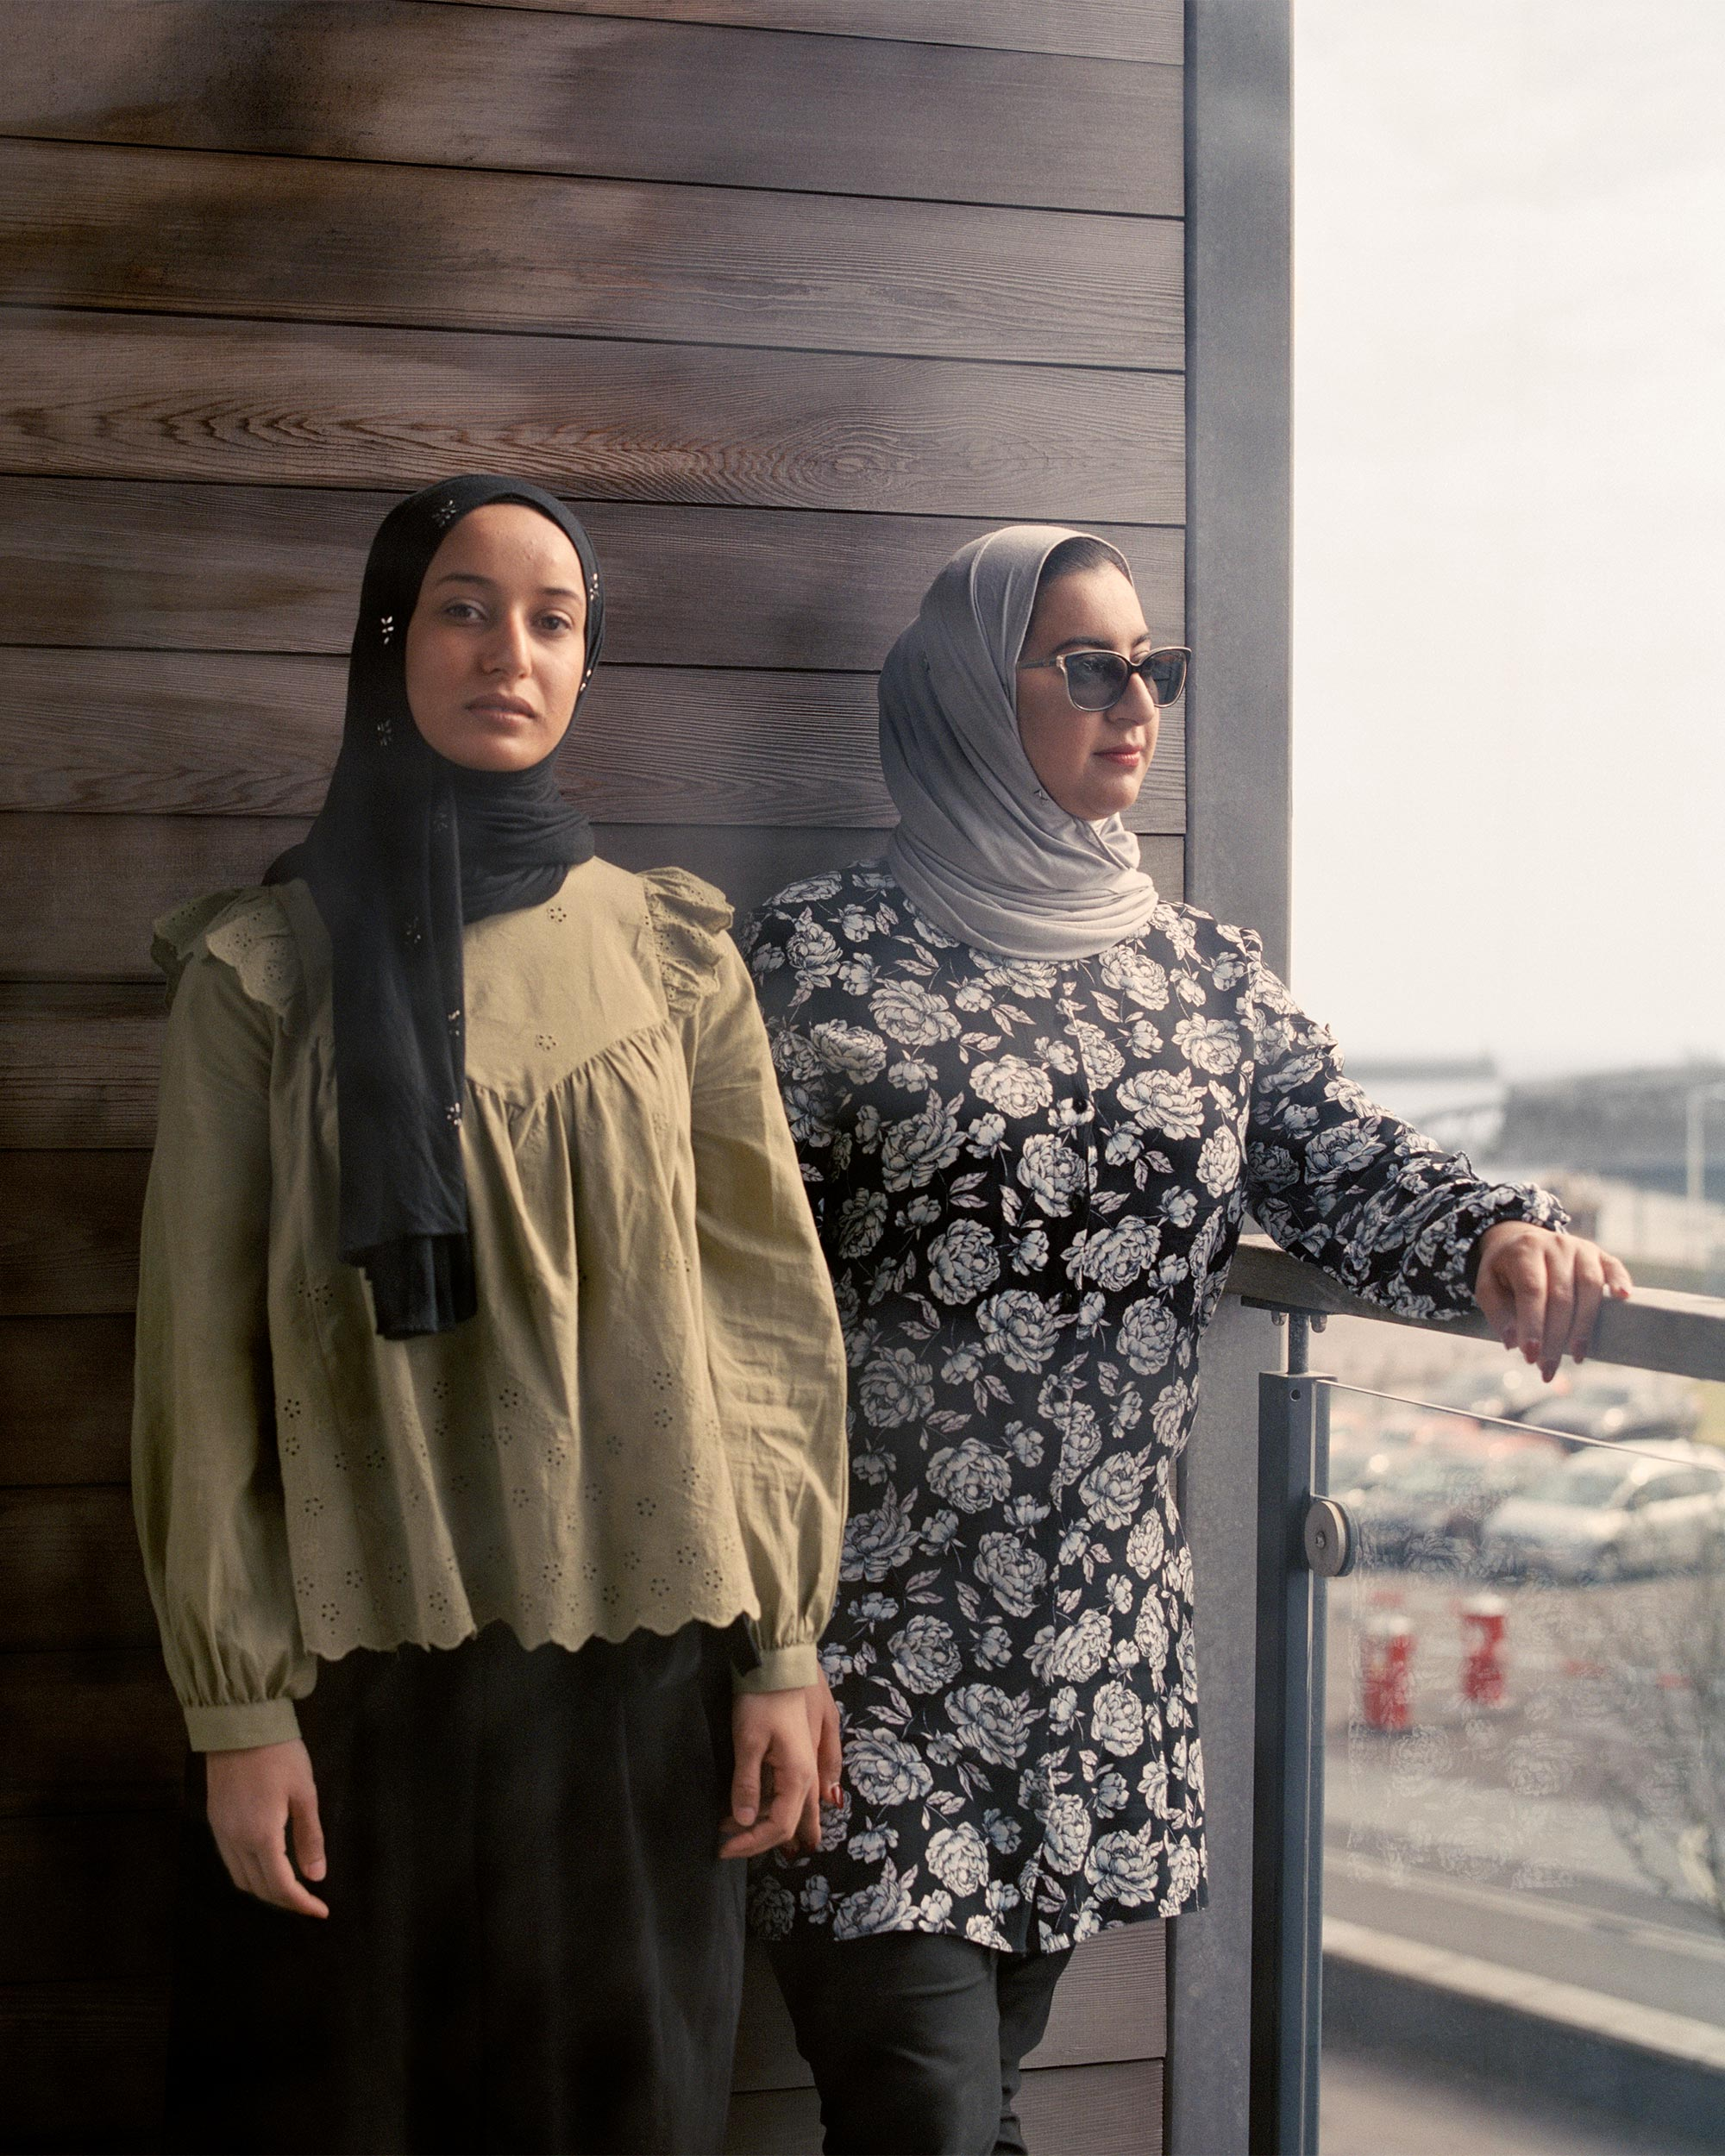 photograph of girls wearing hijab outside from series XO